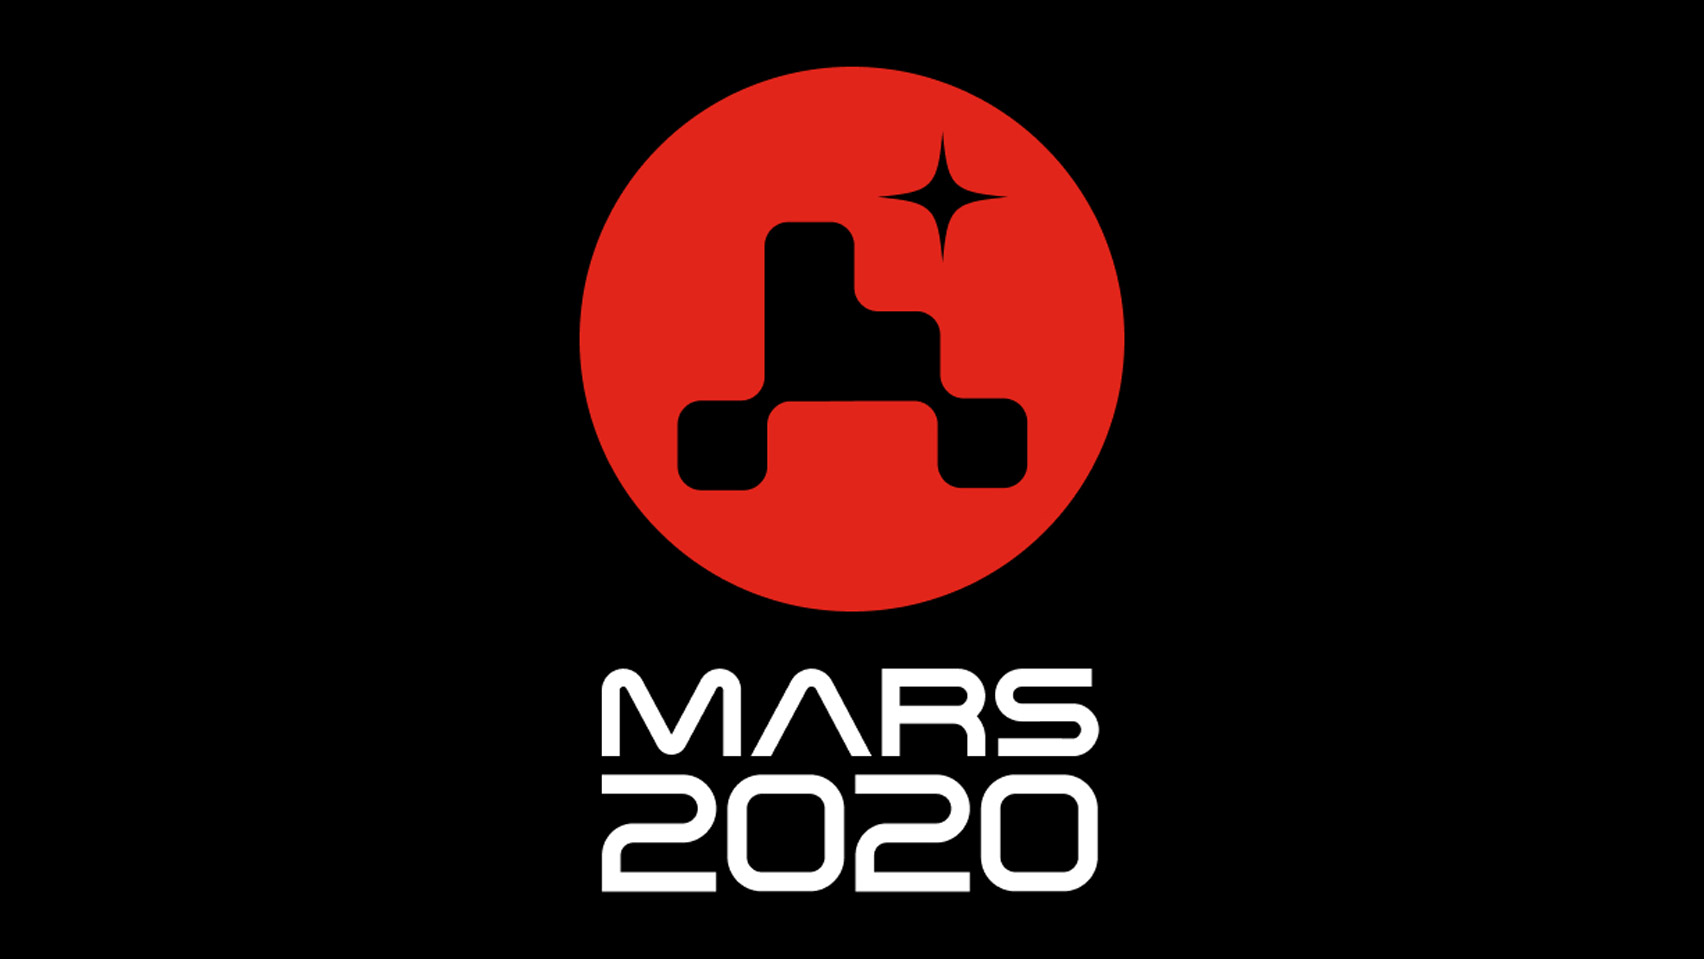 House of van Schneider designs minimal logo for NASA's Mars mission